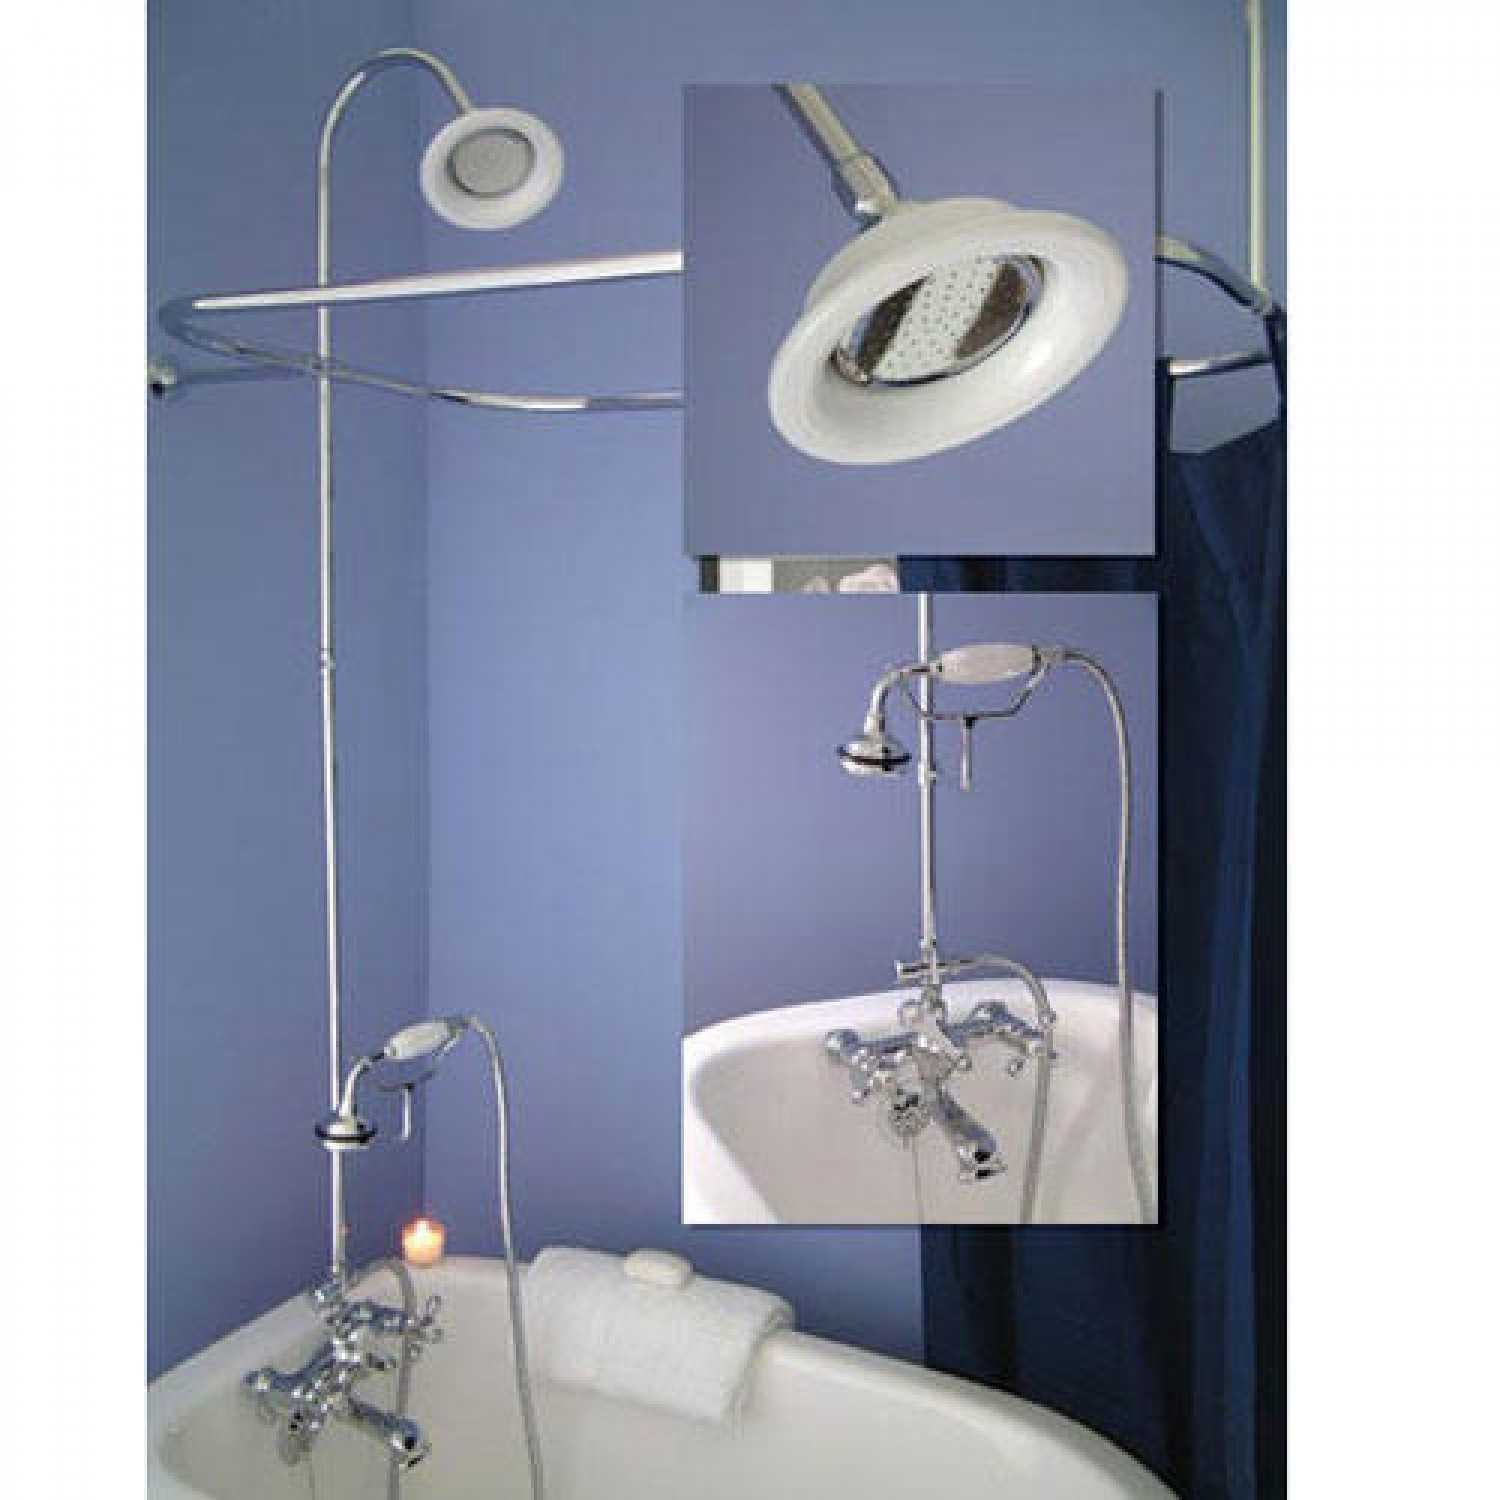 Tub To Shower Faucet Conversion Kit Faucet Ideas Site